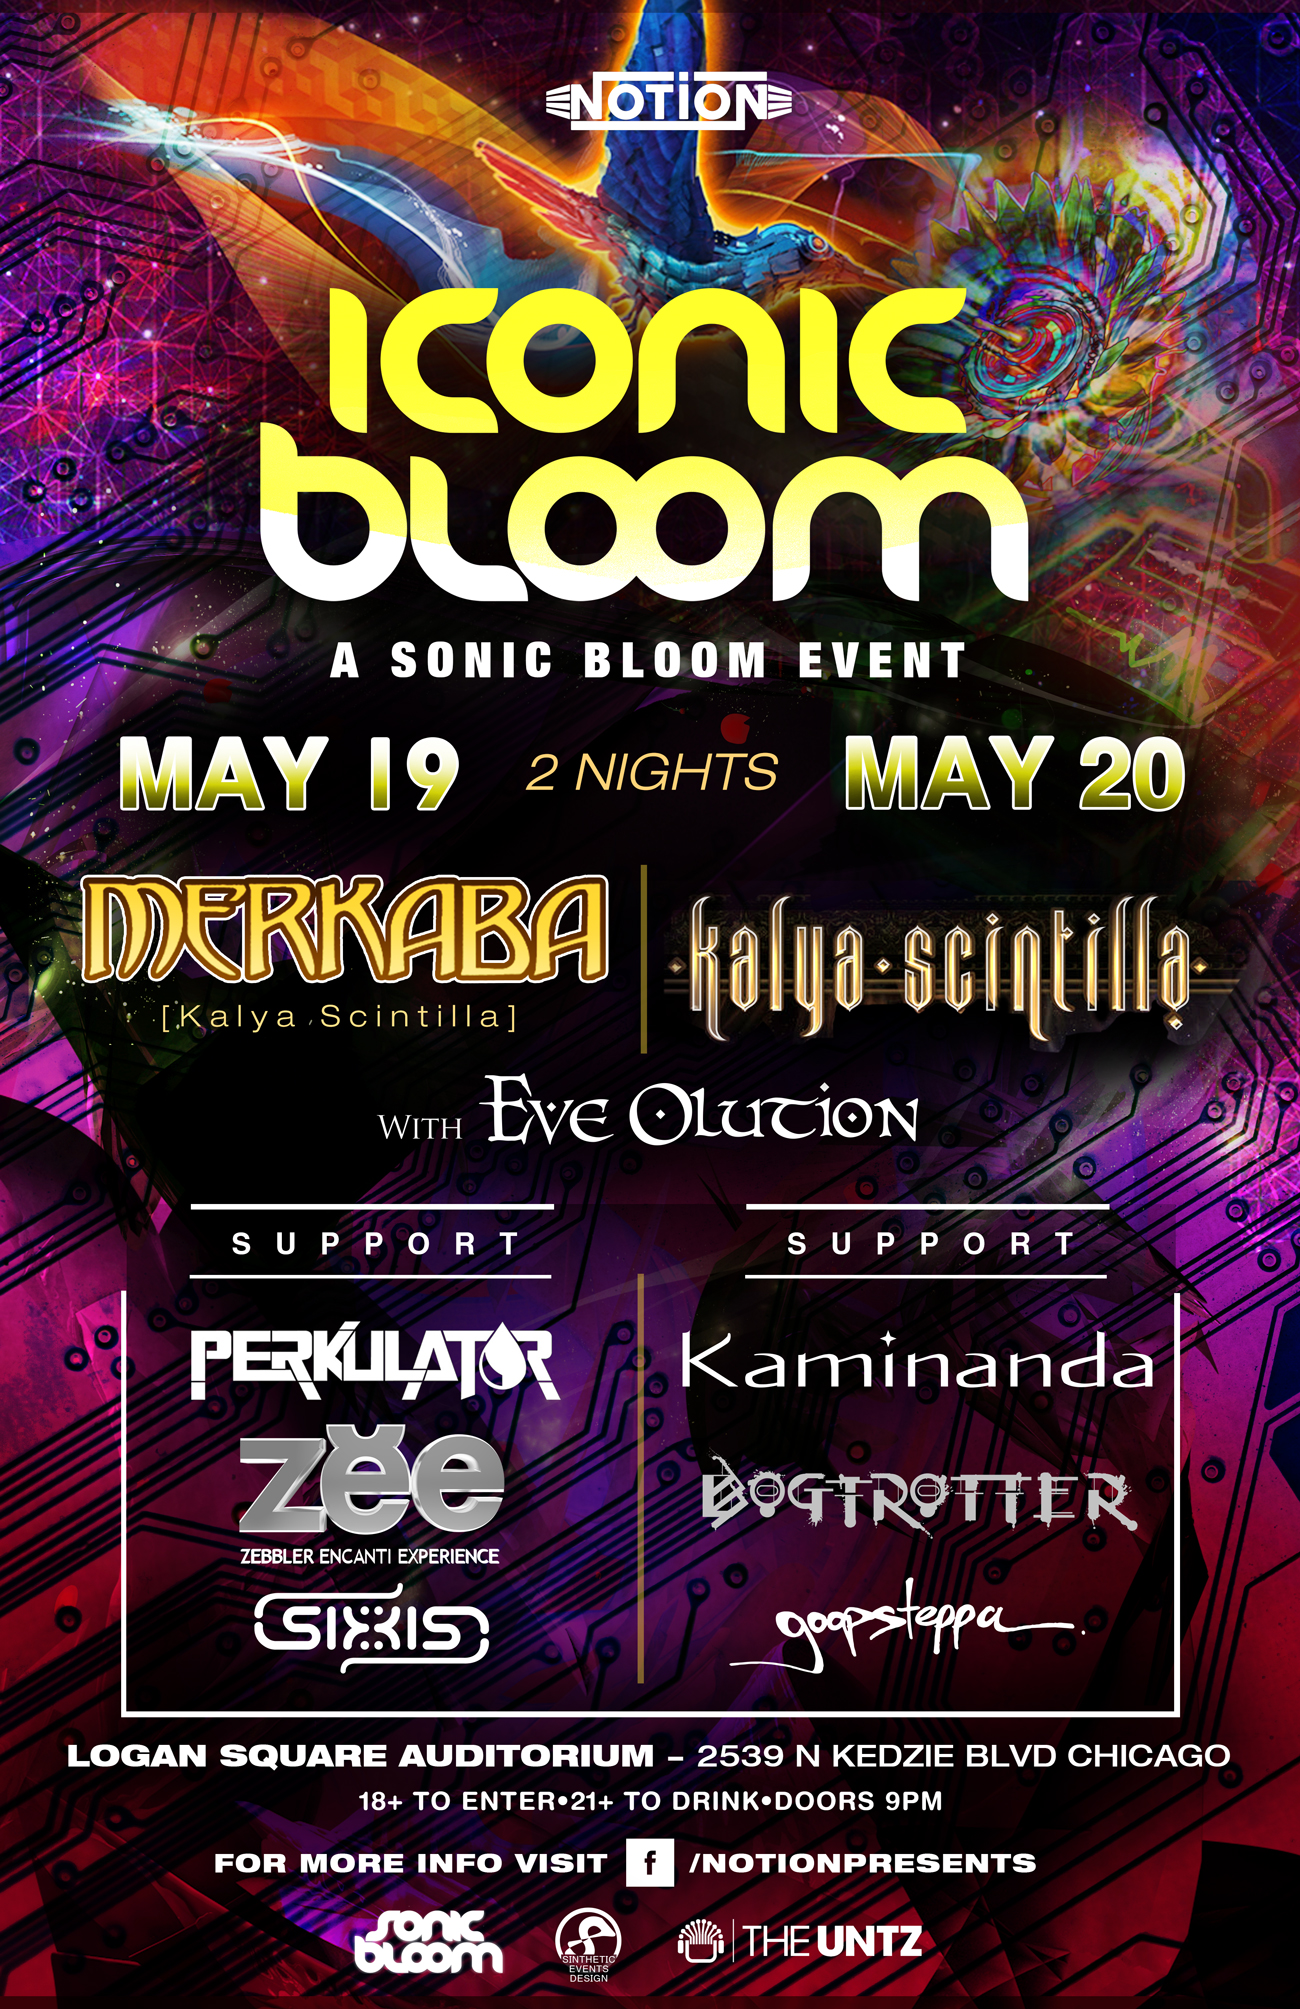 Iconic-Bloom---Web-Low-Rez-Flyer---Notion17